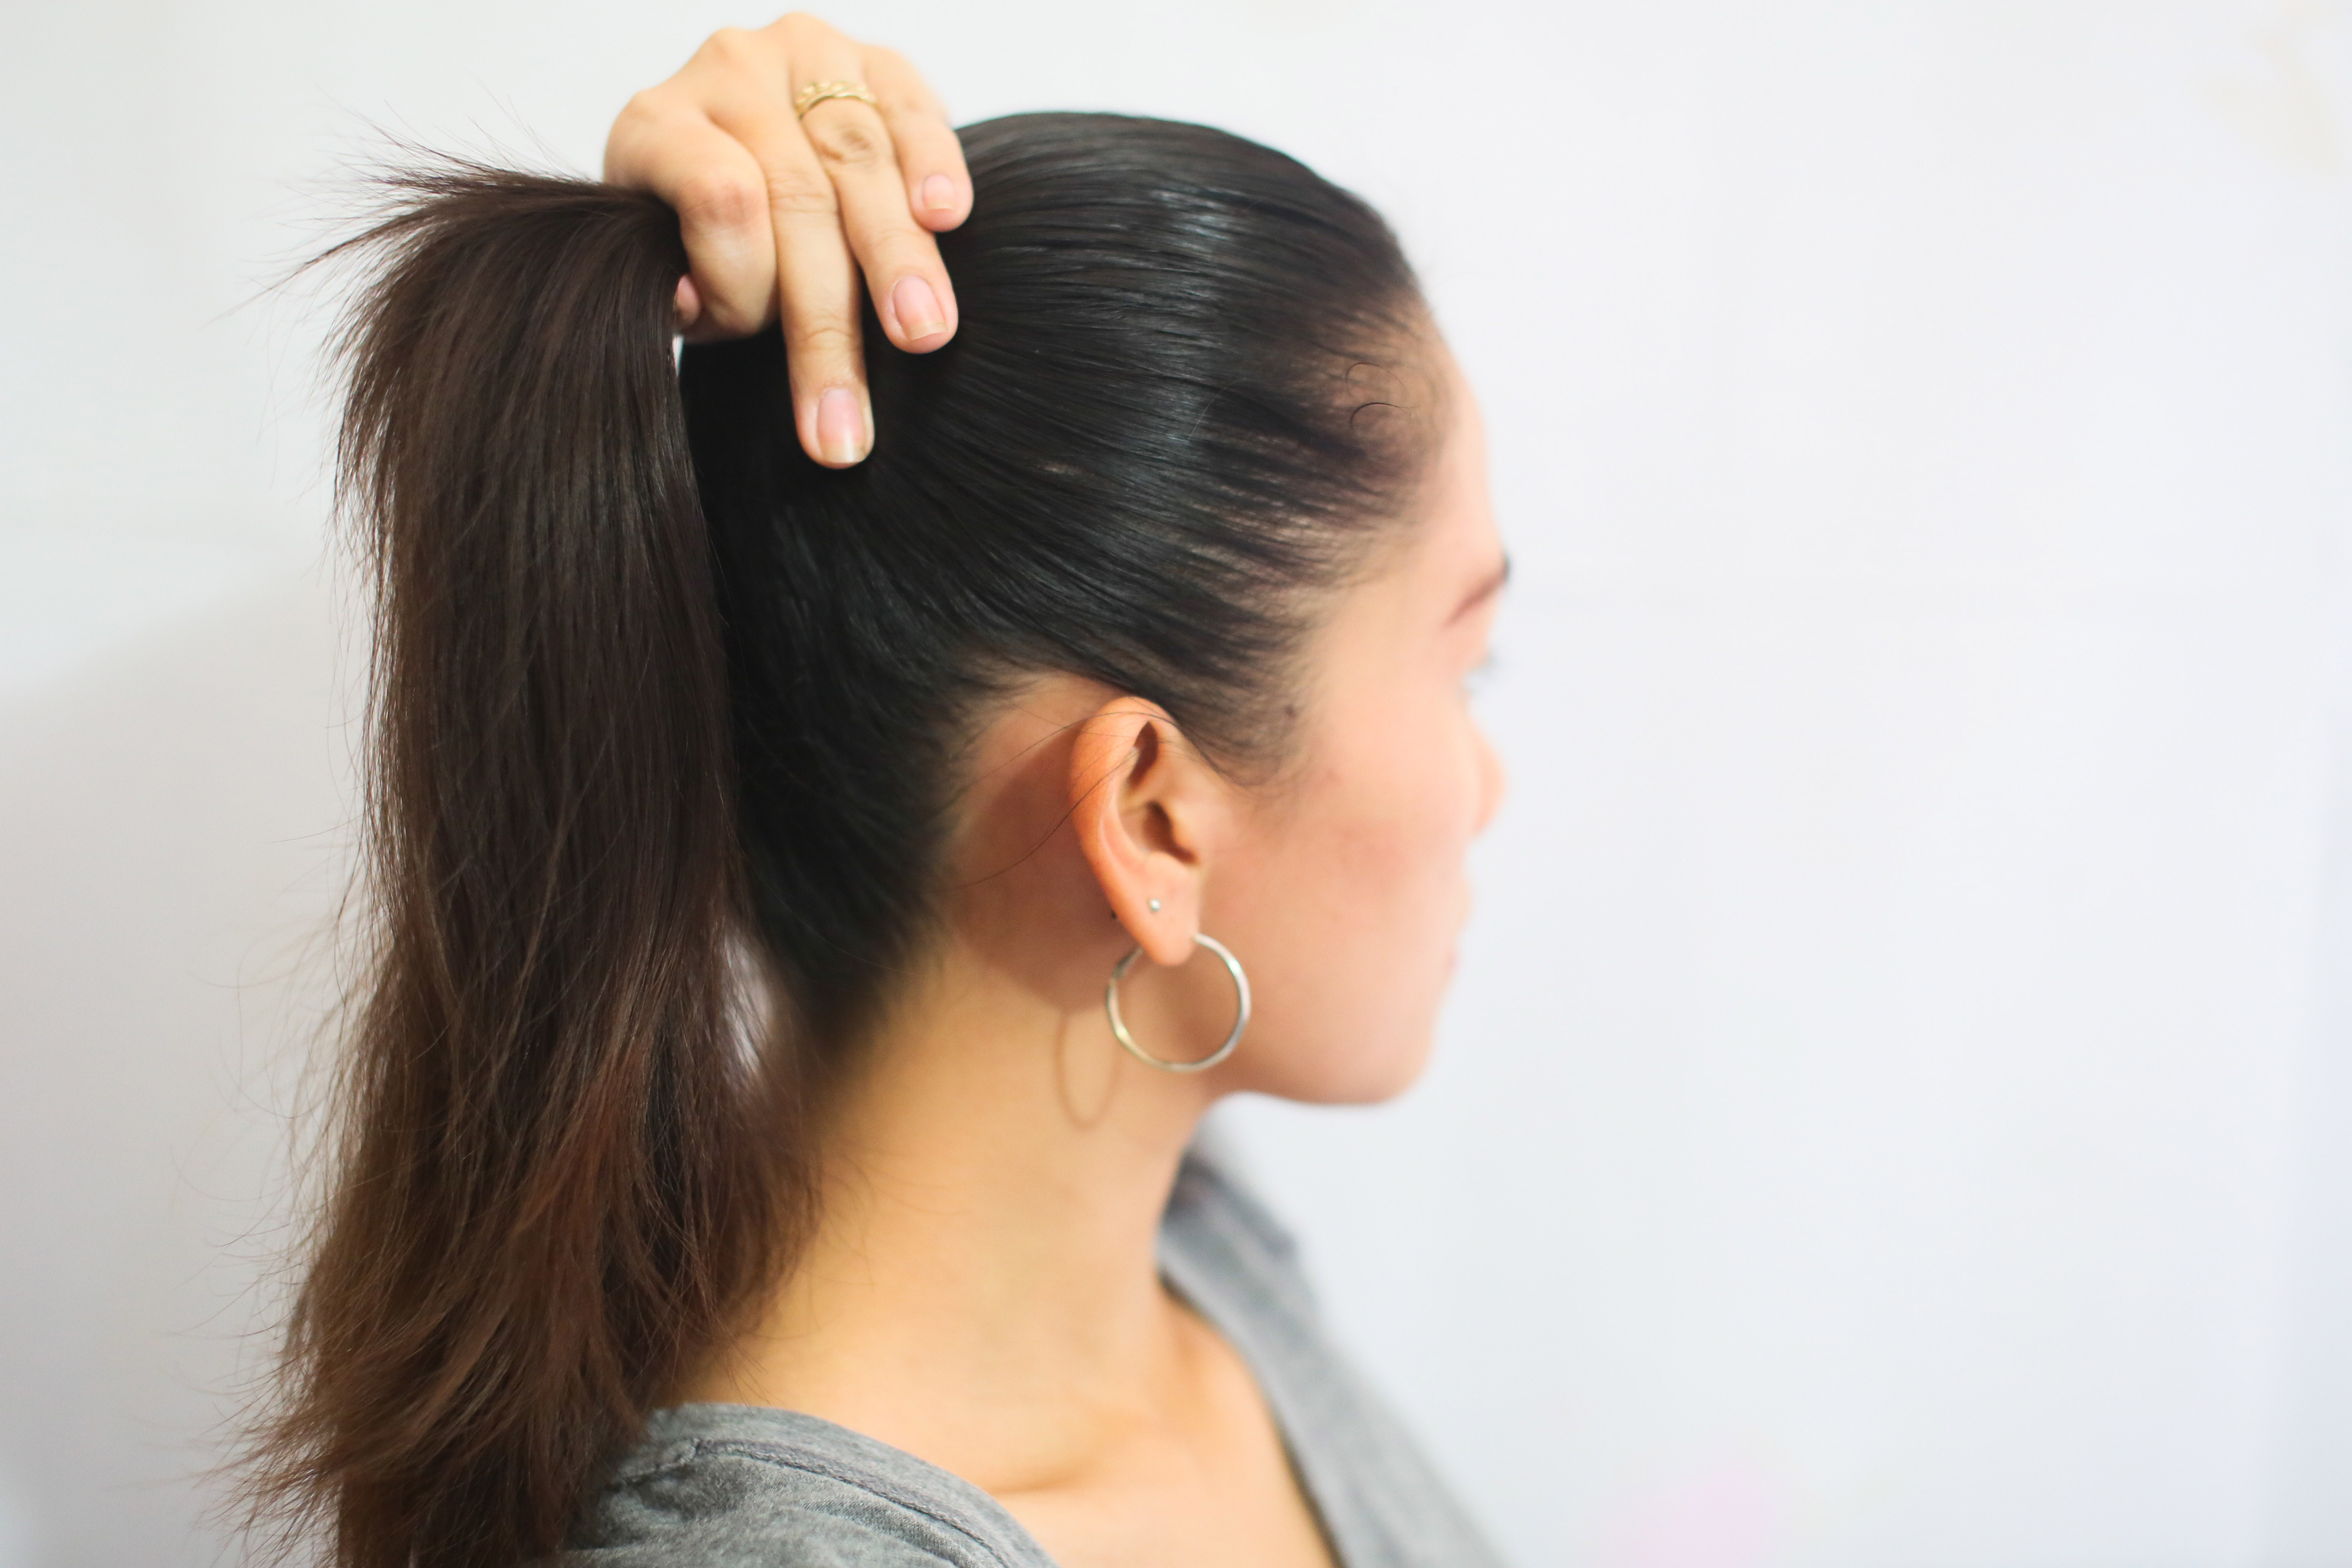 Best ideas about Cute Hairstyles For High School . Save or Pin How to Make Cute Hairstyles for High School 8 Steps Now.